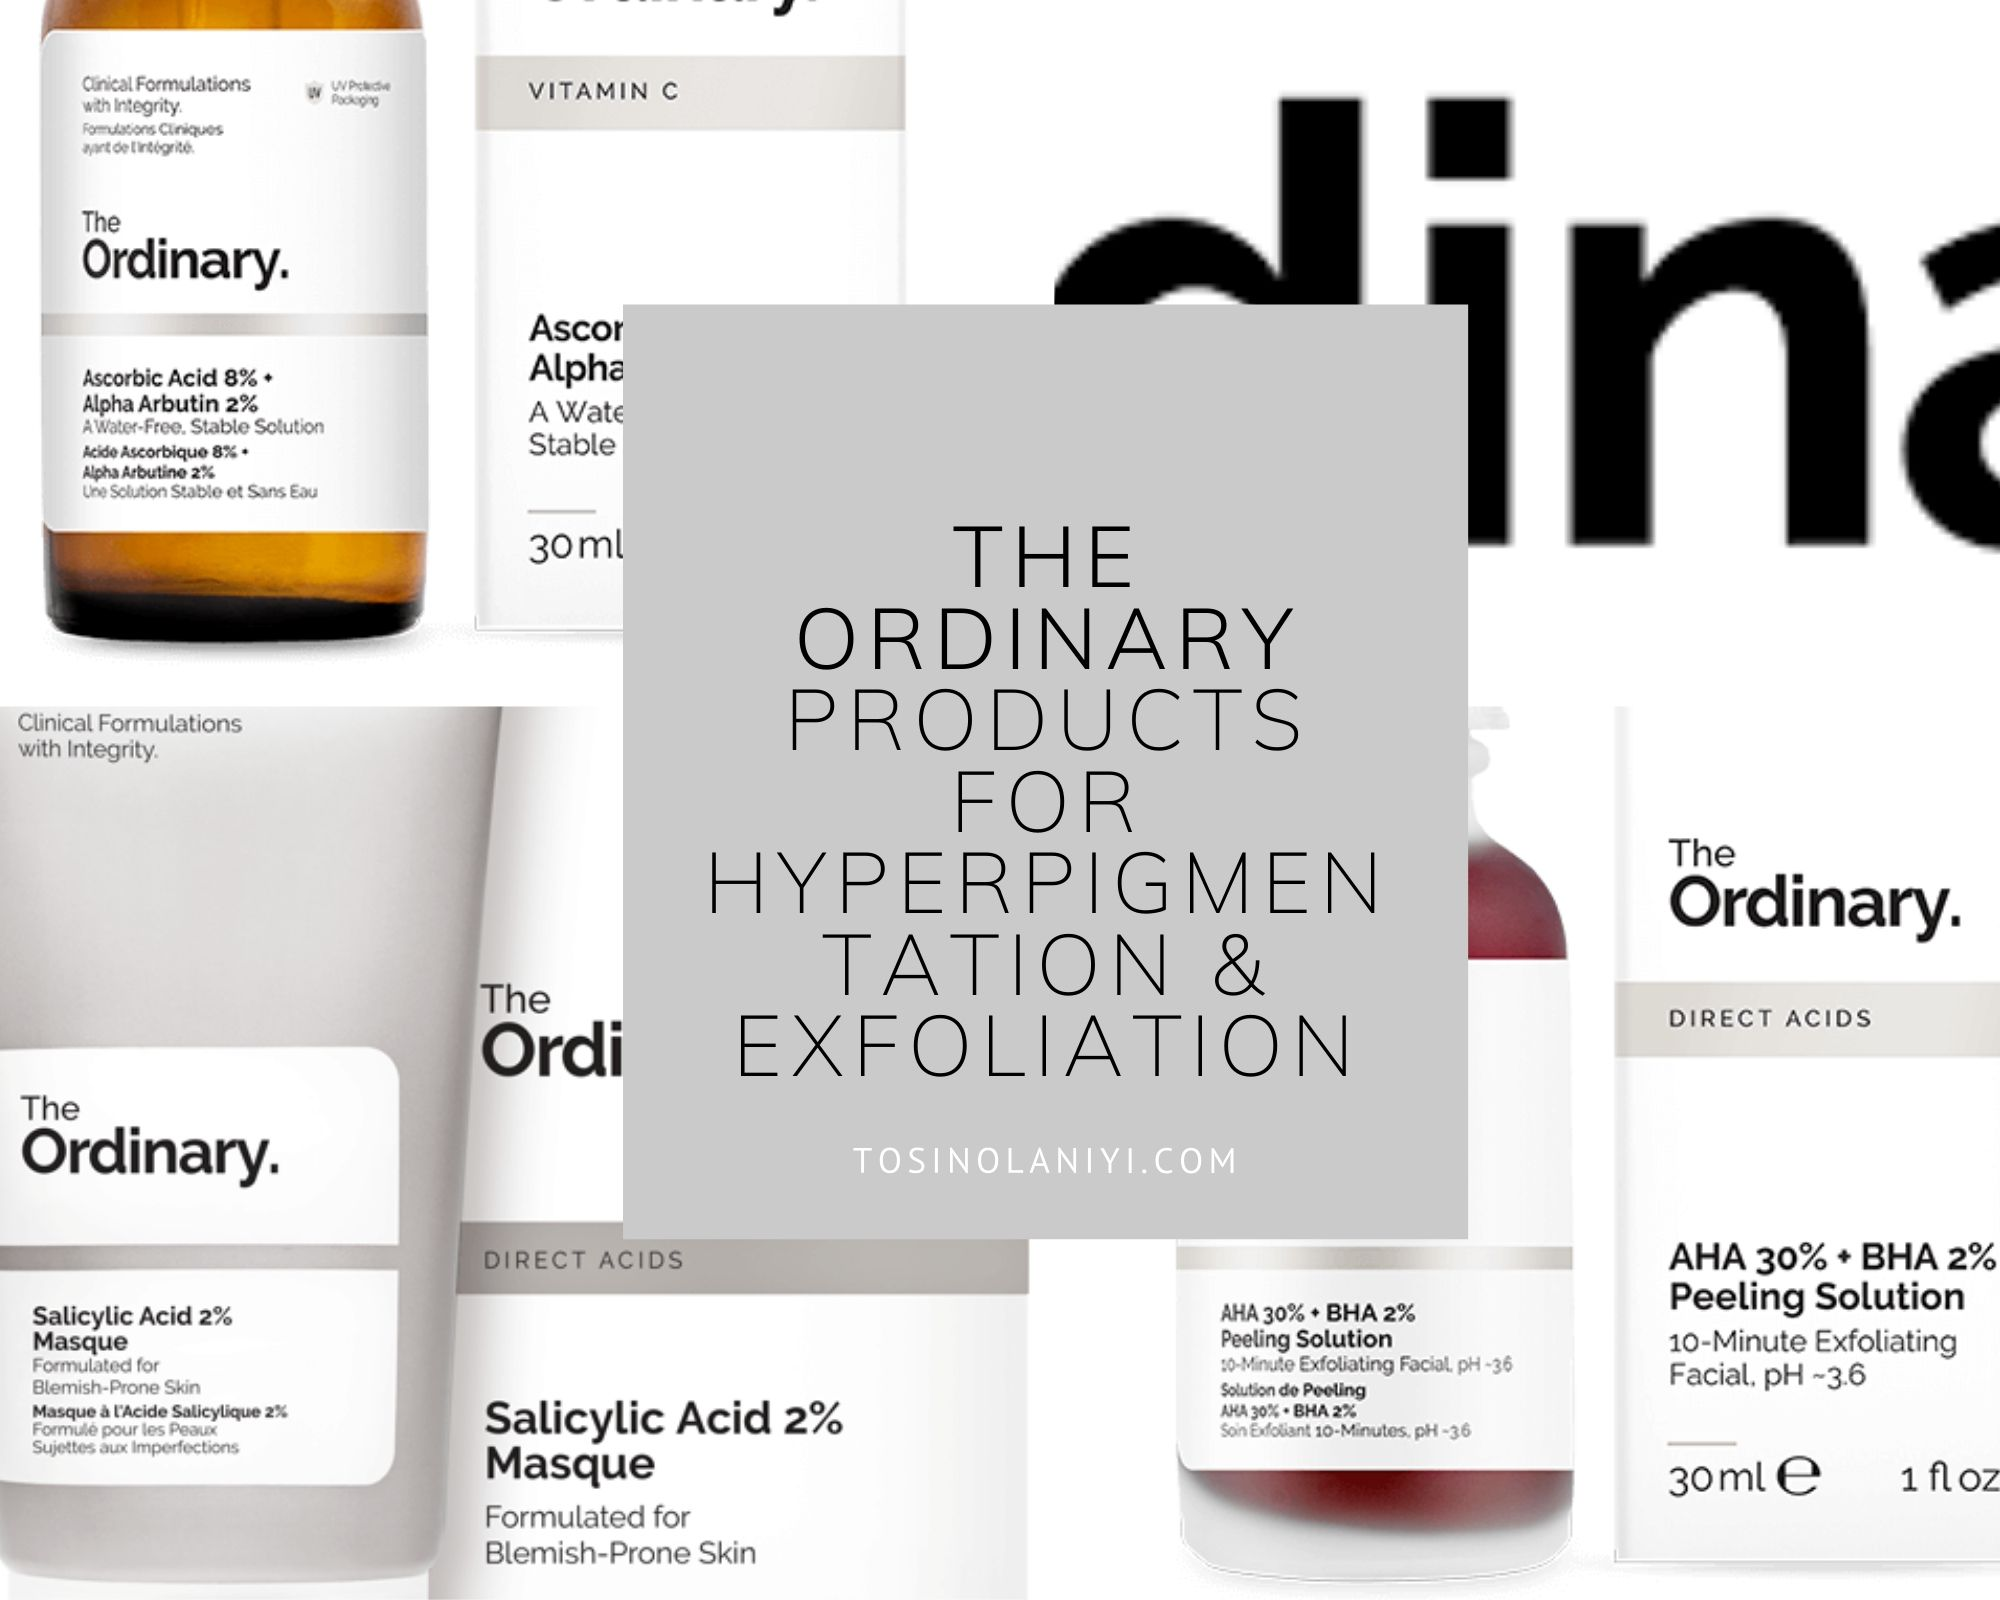 The_Ordinary_products_hyperpigmentation_exfoliation_acids